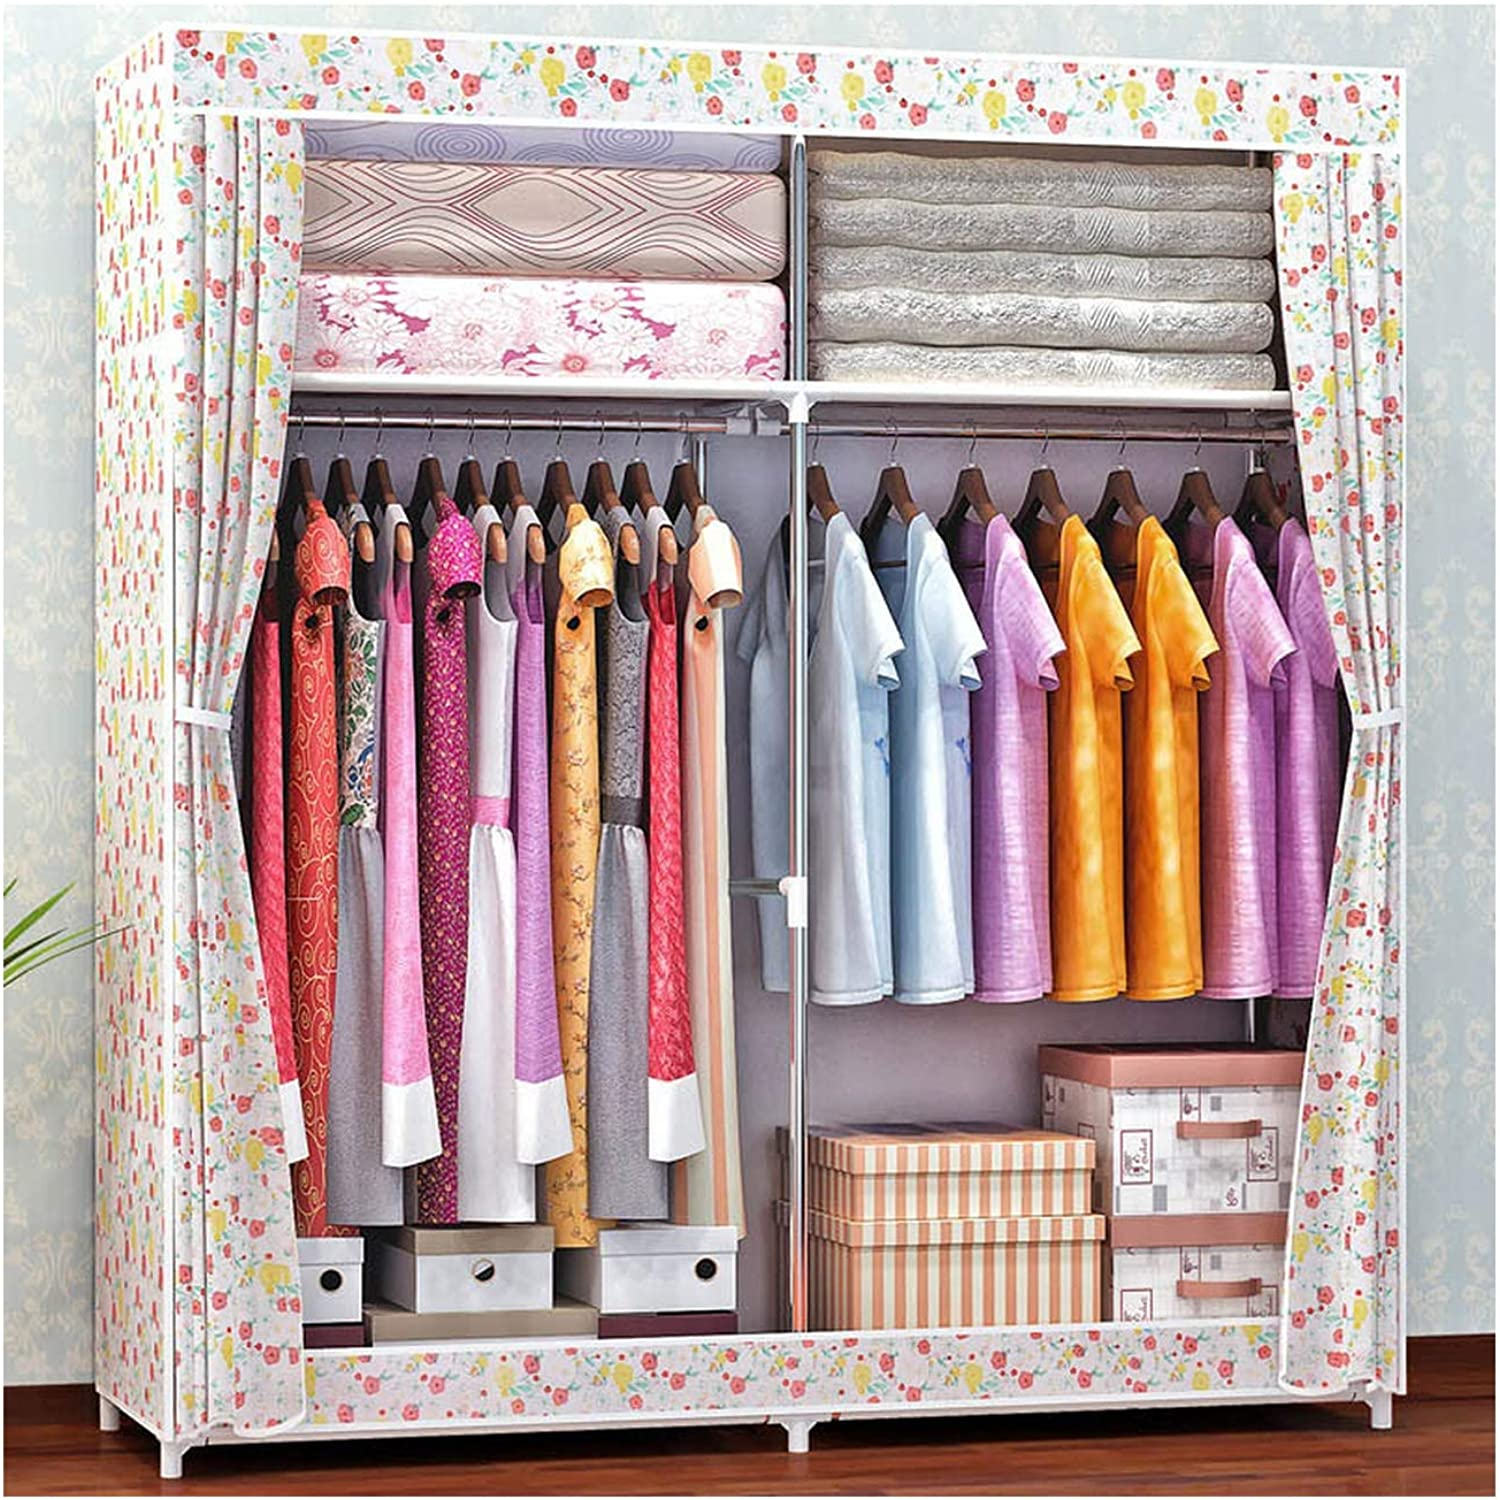 Cloth Wardrobe for Clothes Fabric Folding Portable Closet Storage Cabinet Bedroom Home Furniture,05